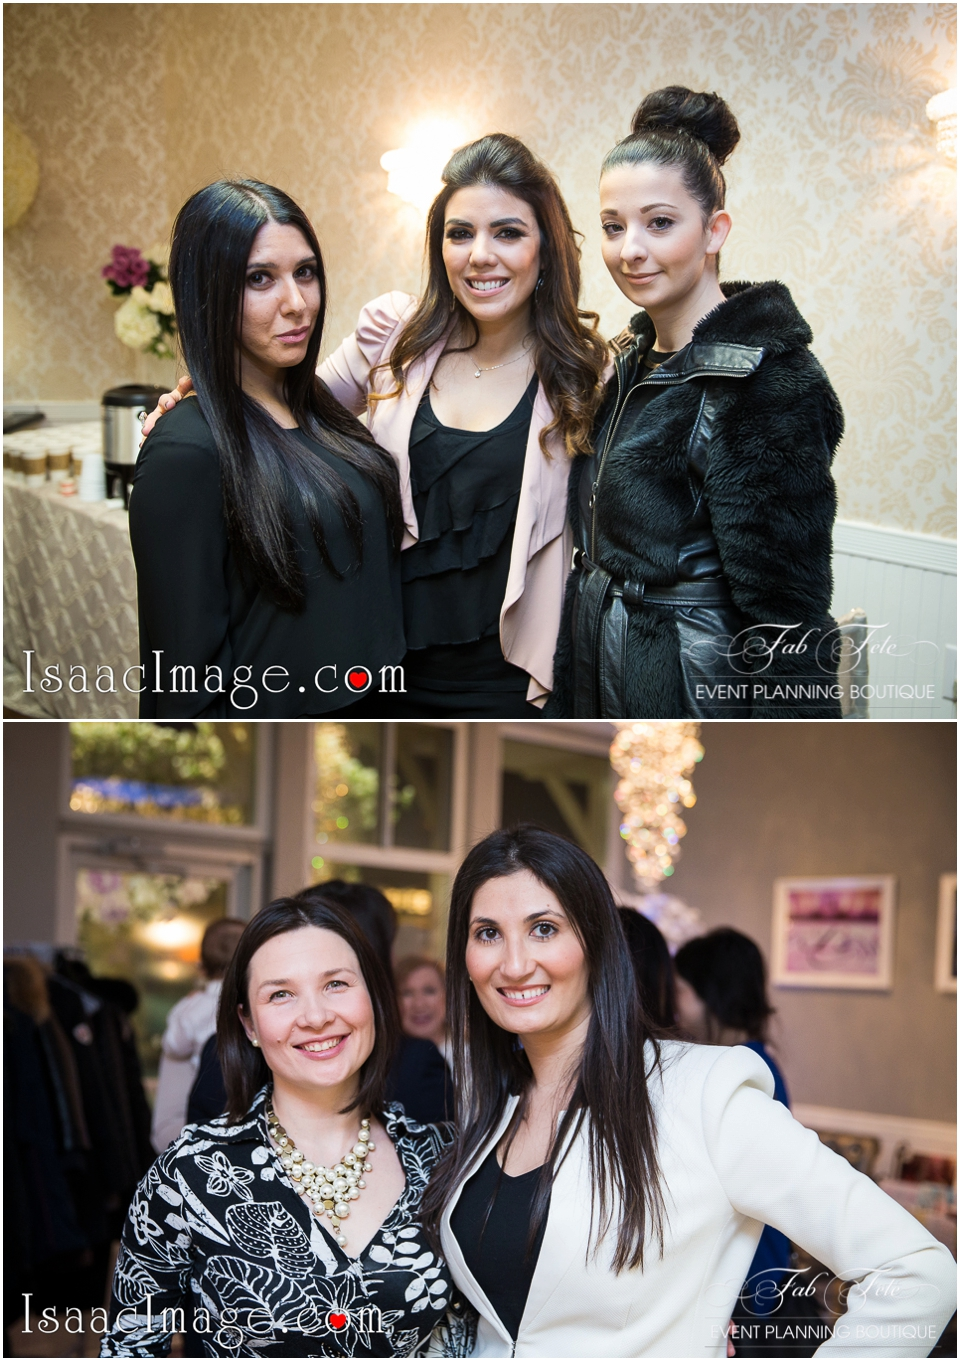 Fab Fete Toronto Wedding Event Planning Boutique open house_6481.jpg